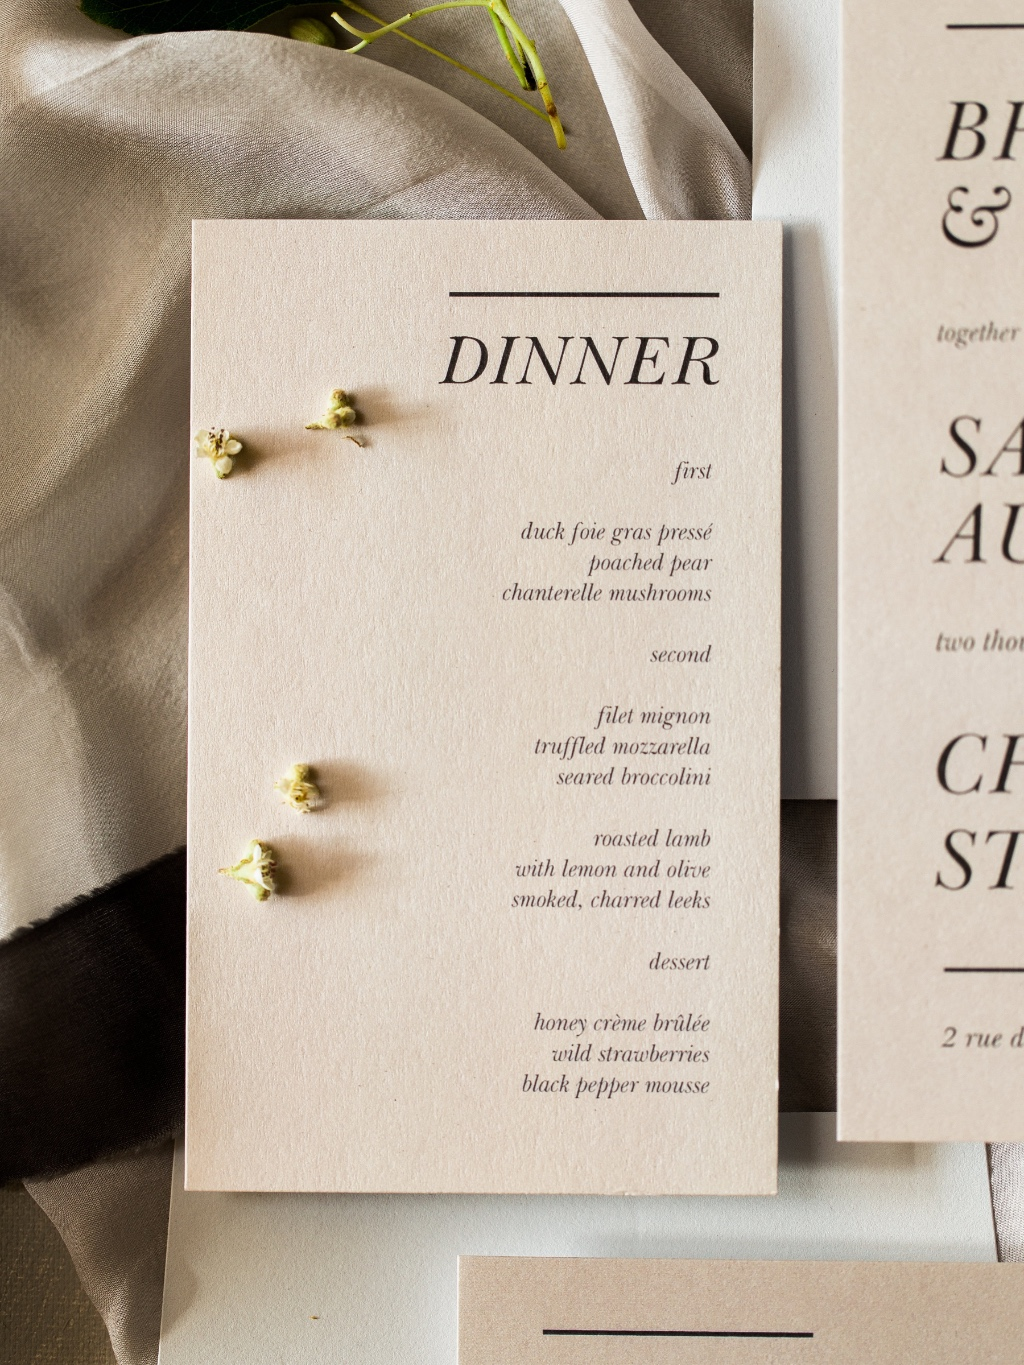 Dinner menus your guests will adore! Match your wedding day stationery to your invitation suite for a perfectly polished detail.